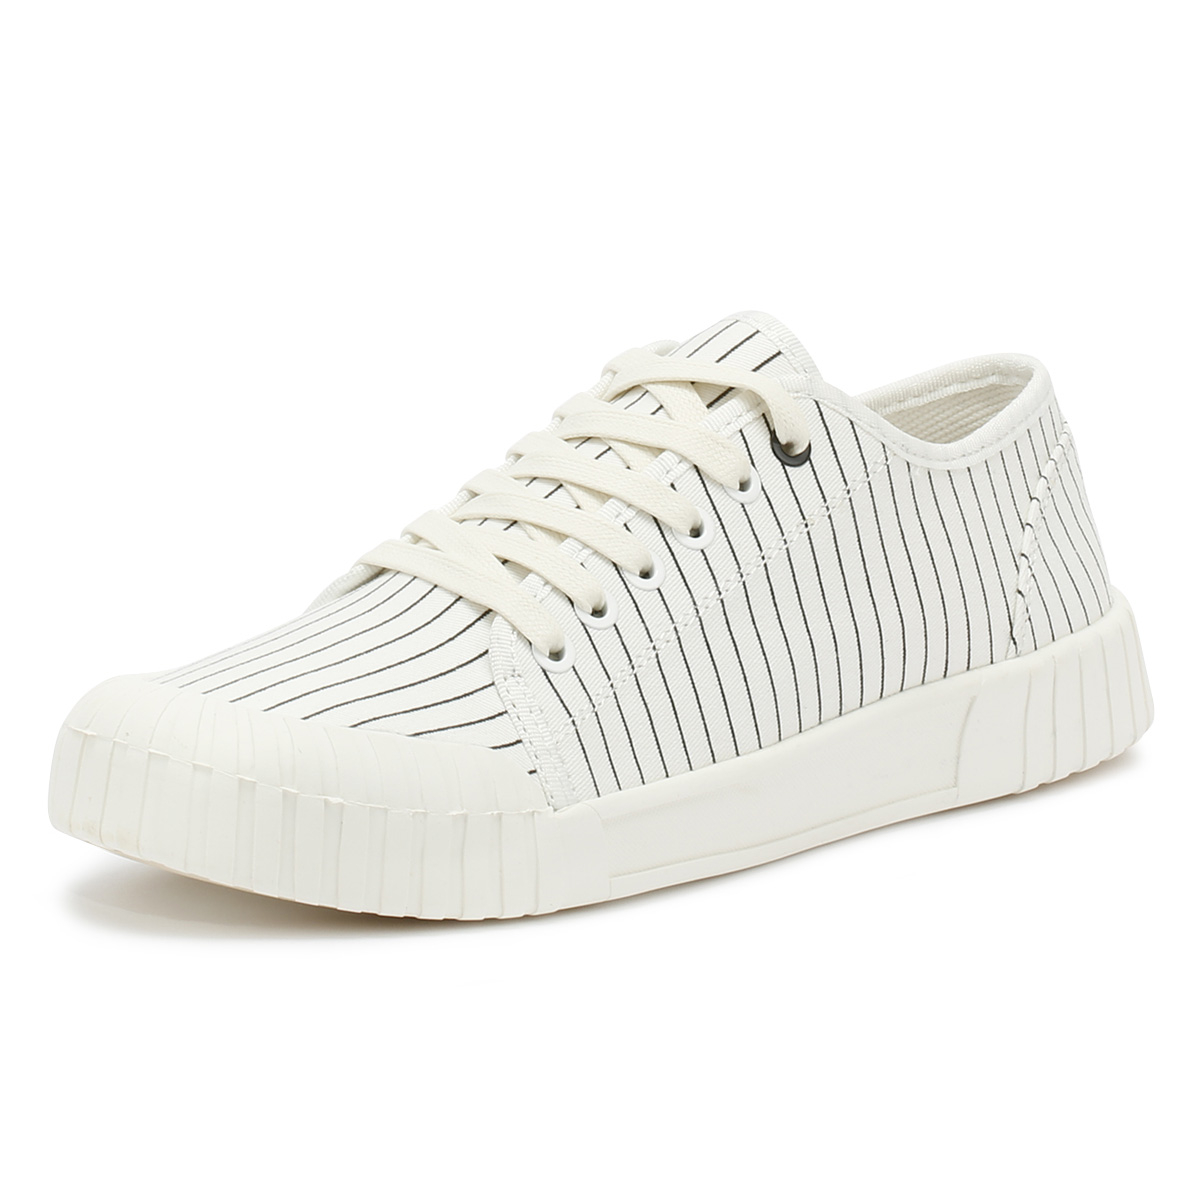 Good News News Good Unisex Trainers Weiß Hurler Niedrig Lace Up Sport Casual Schuhes ffc75b